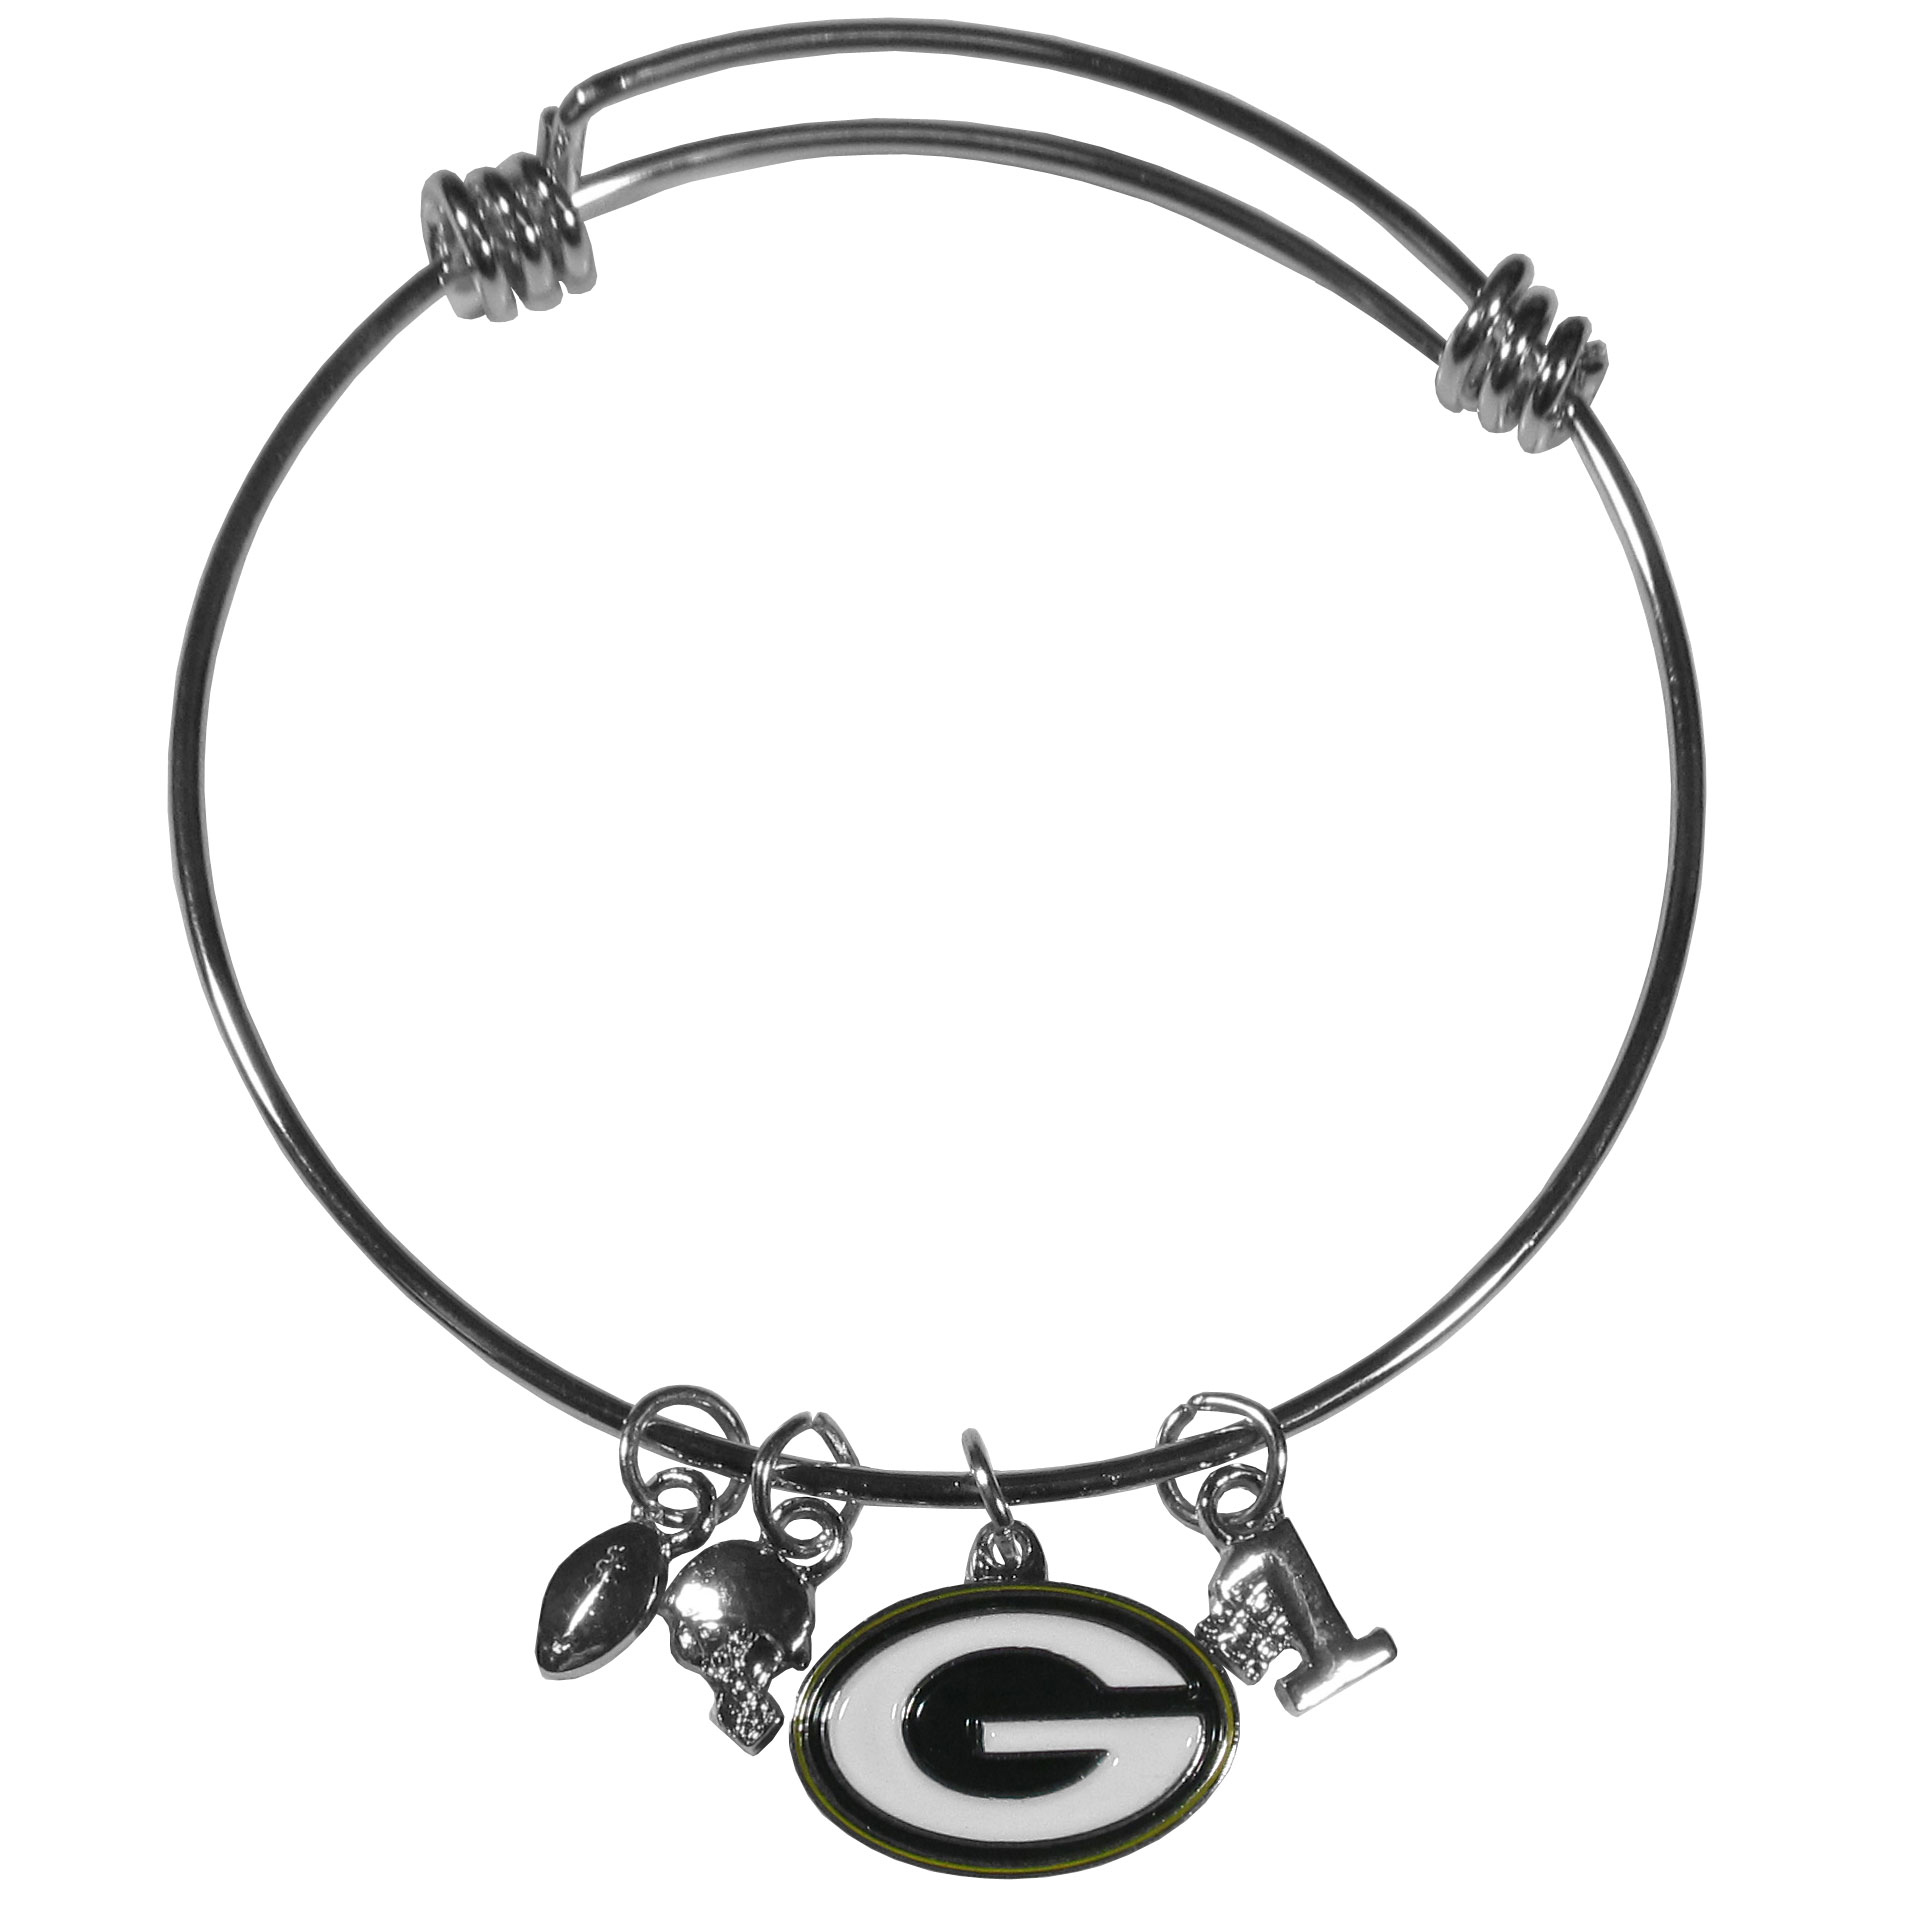 Green Bay Packers Charm Bangle Bracelet - Adjustable wire bracelets are all the rage and this Green Bay Packers bracelet matches the popular trend with your beloved team. The bracelet features 4 charms in total, each feature exceptional detail and the team charm has enameled team colors.